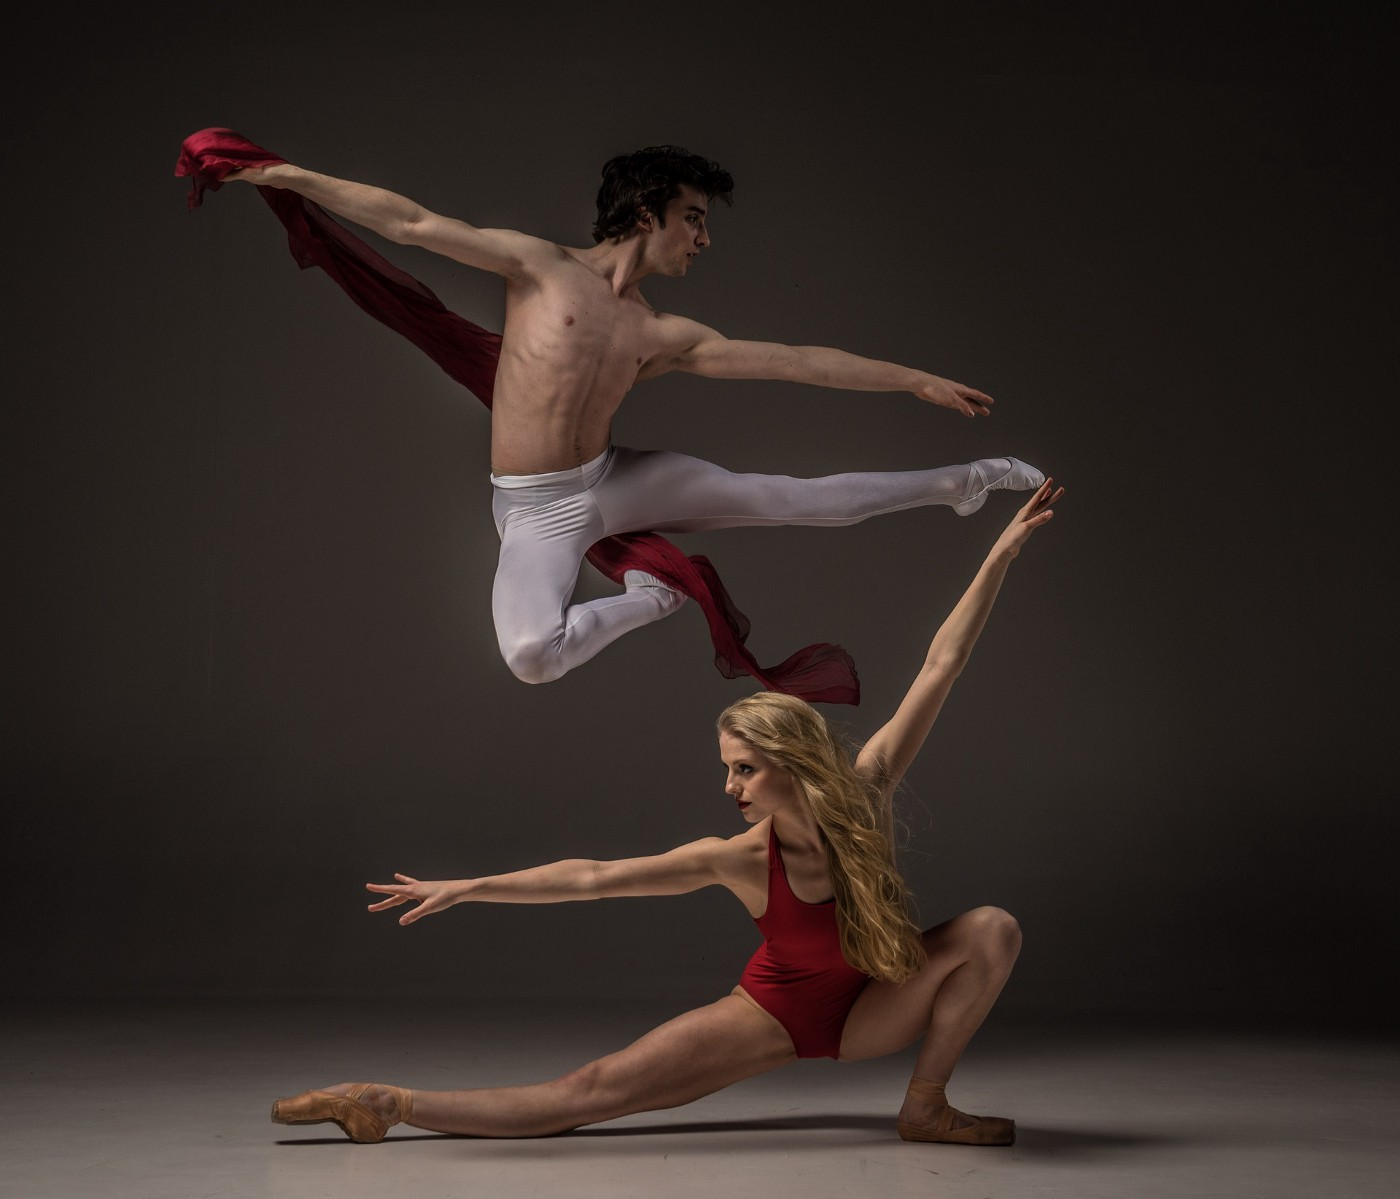 A male ballet dancer leaping over a female dancer with her arms stretched out.